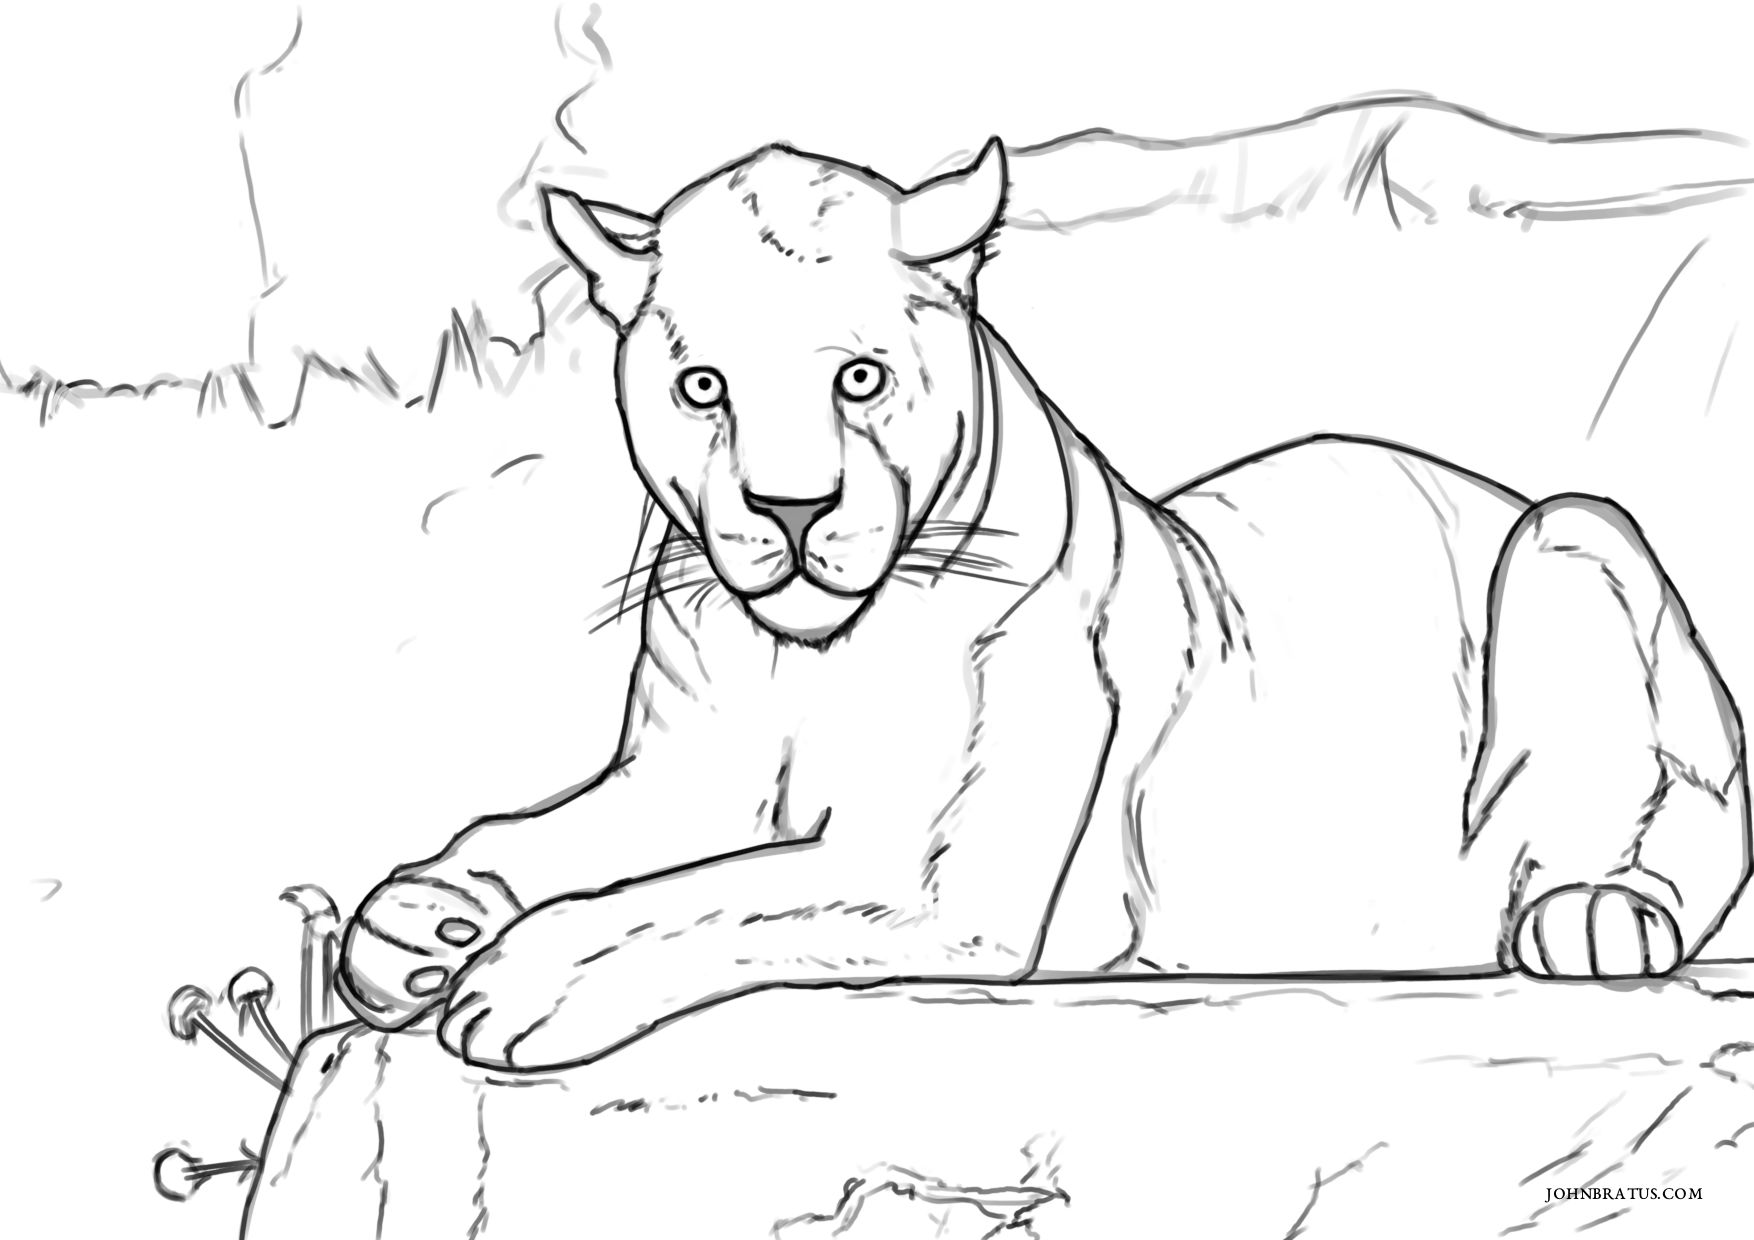 Digital sketch of a black panther resting atop a rock